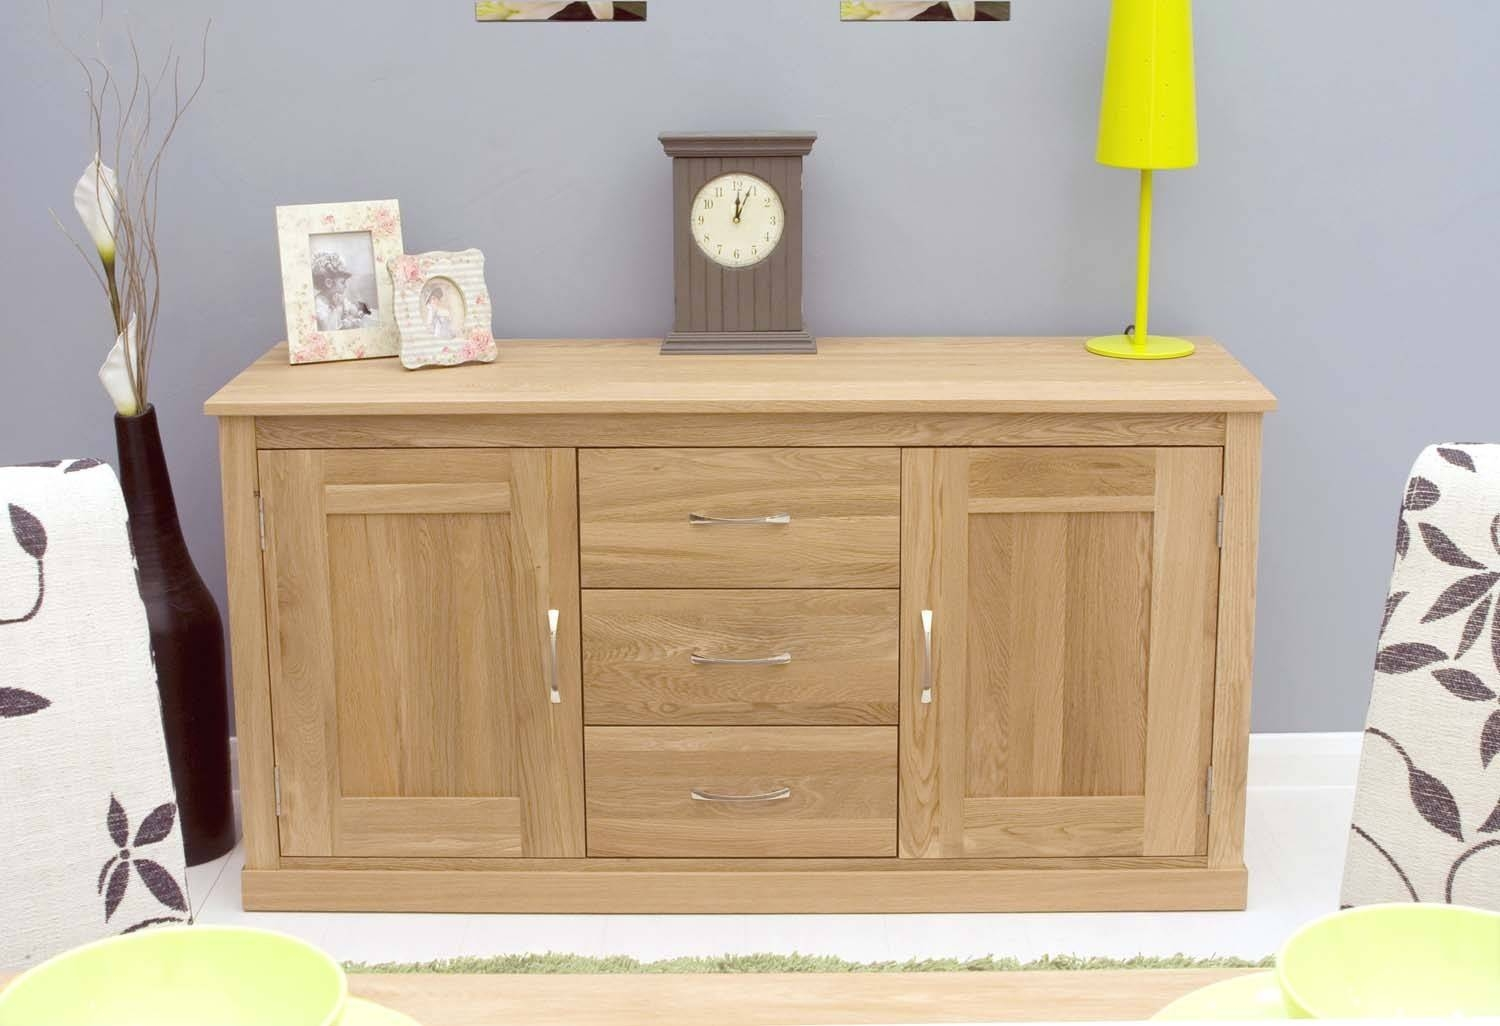 Modern Light Oak Sideboards And Console Table | Solid Oak throughout Light Oak Sideboards (Image 11 of 30)